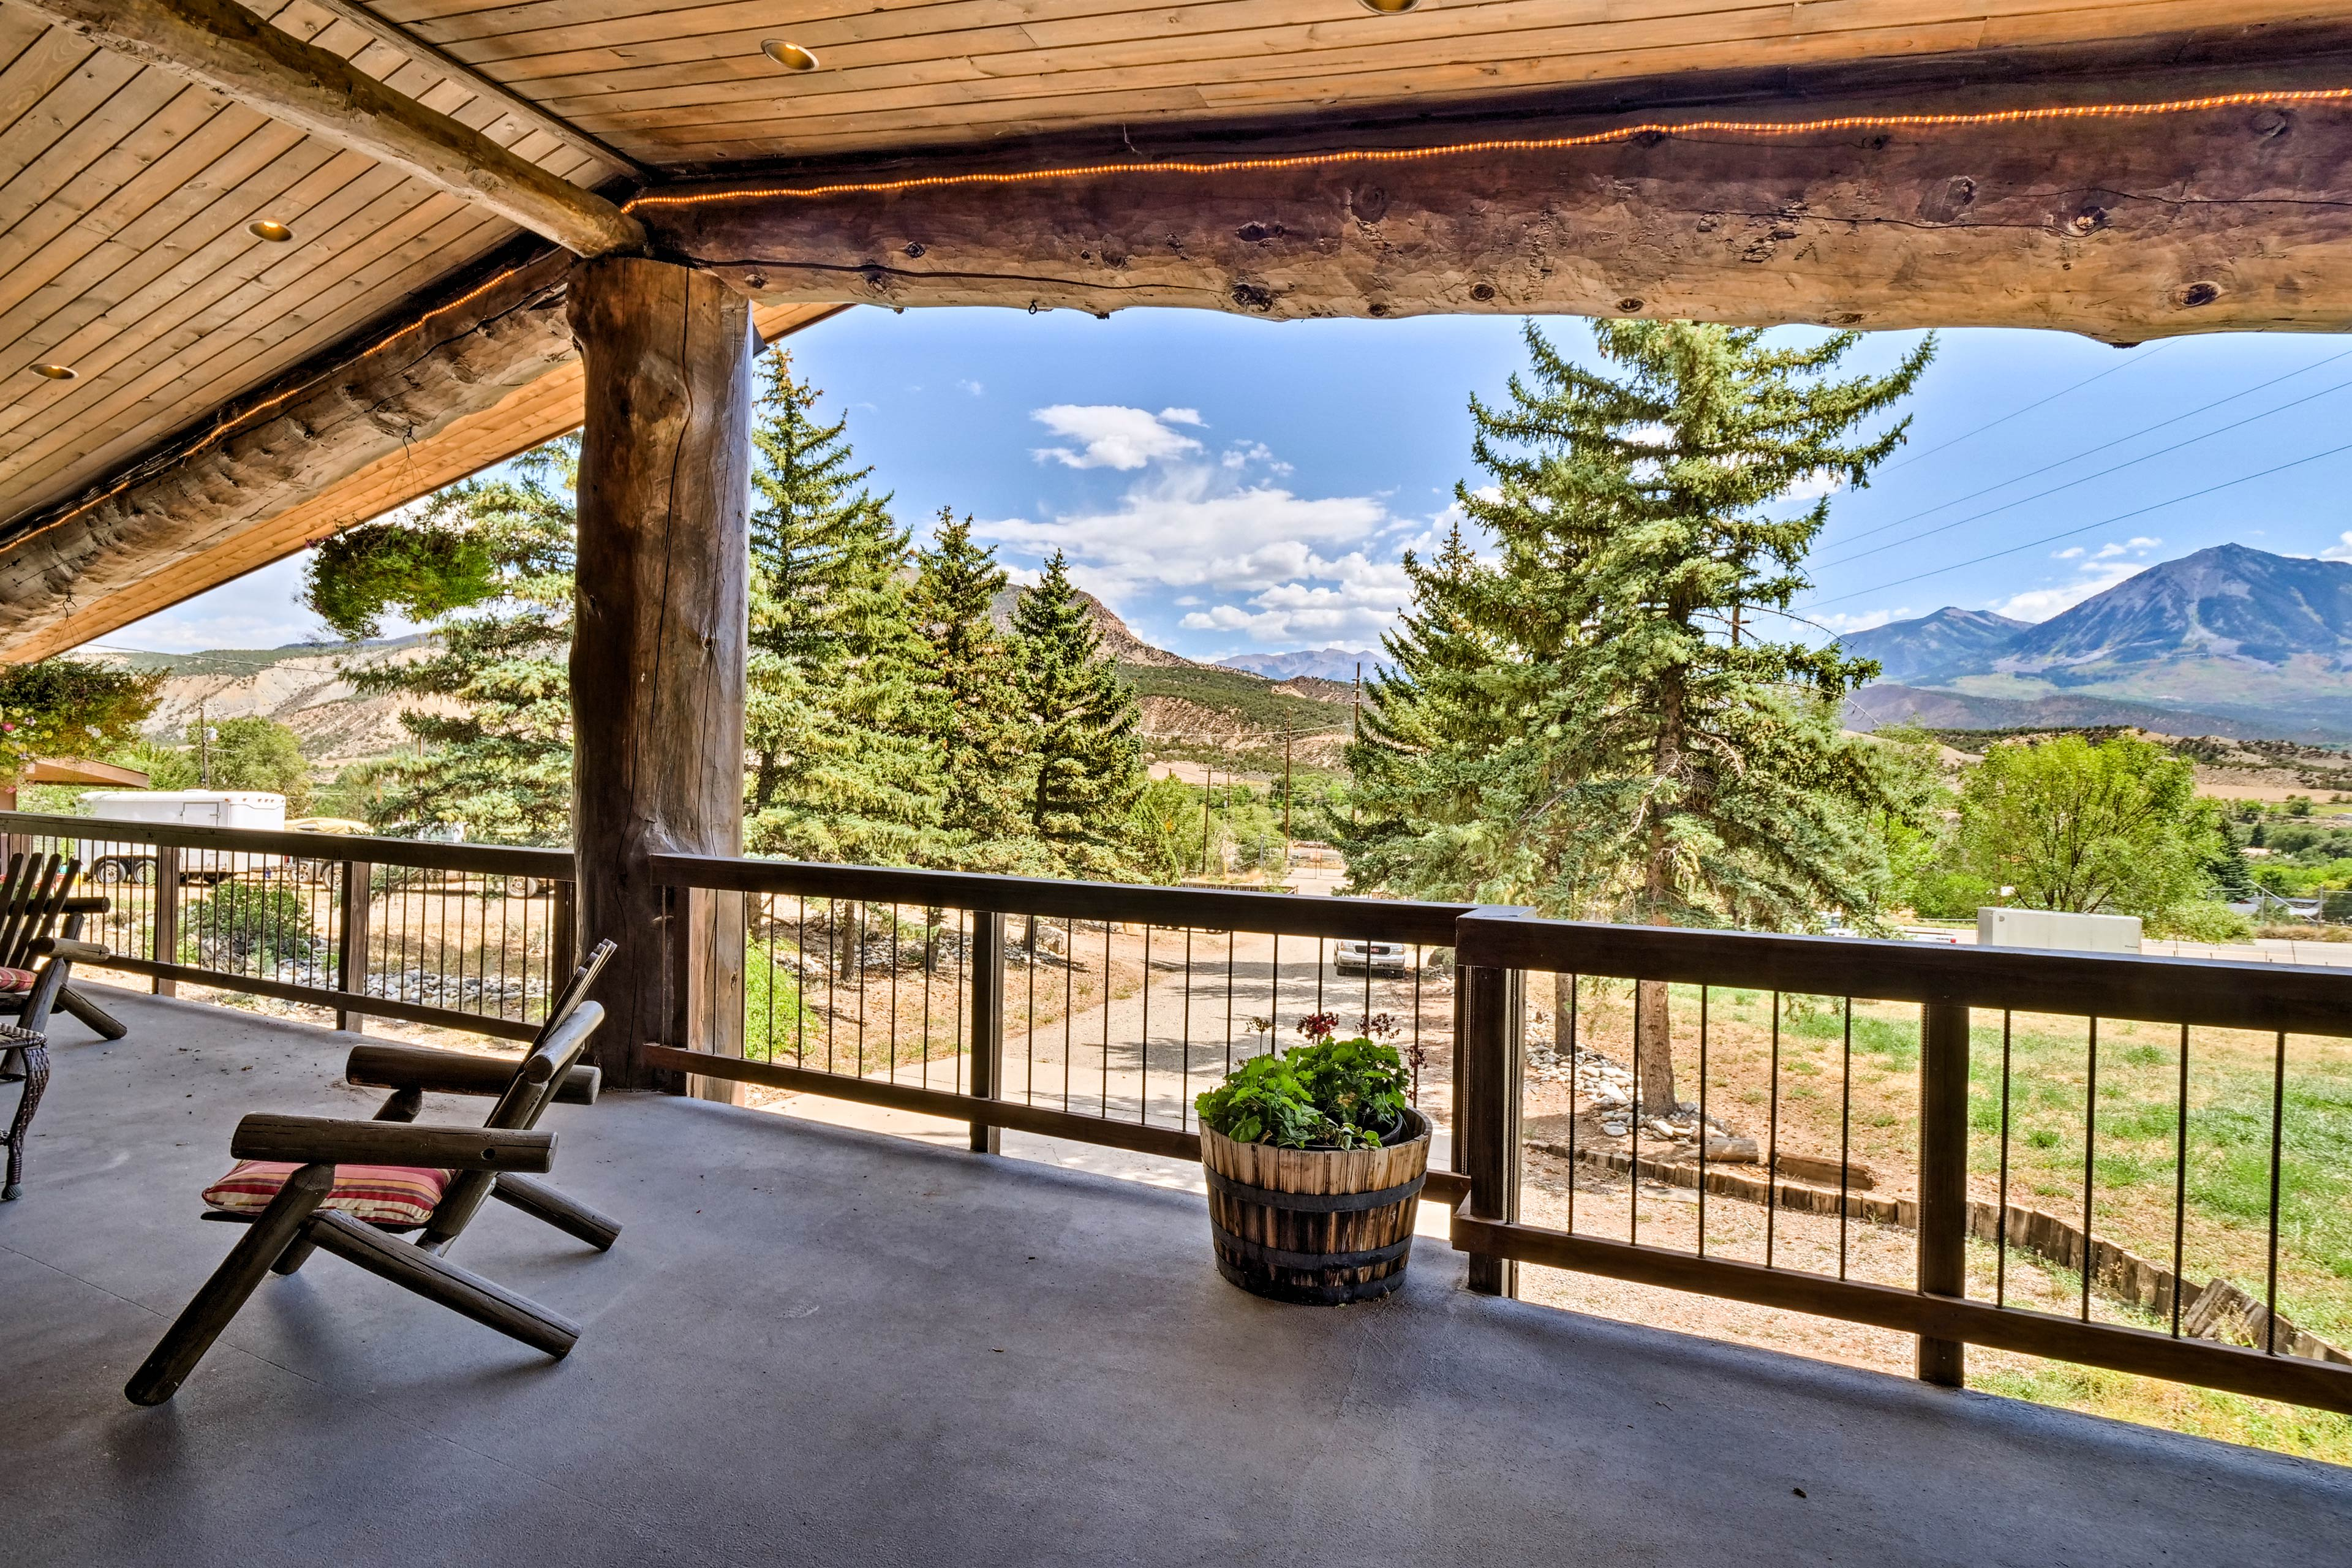 The tallest mountain you'll see from the deck is Mount Lamborn.